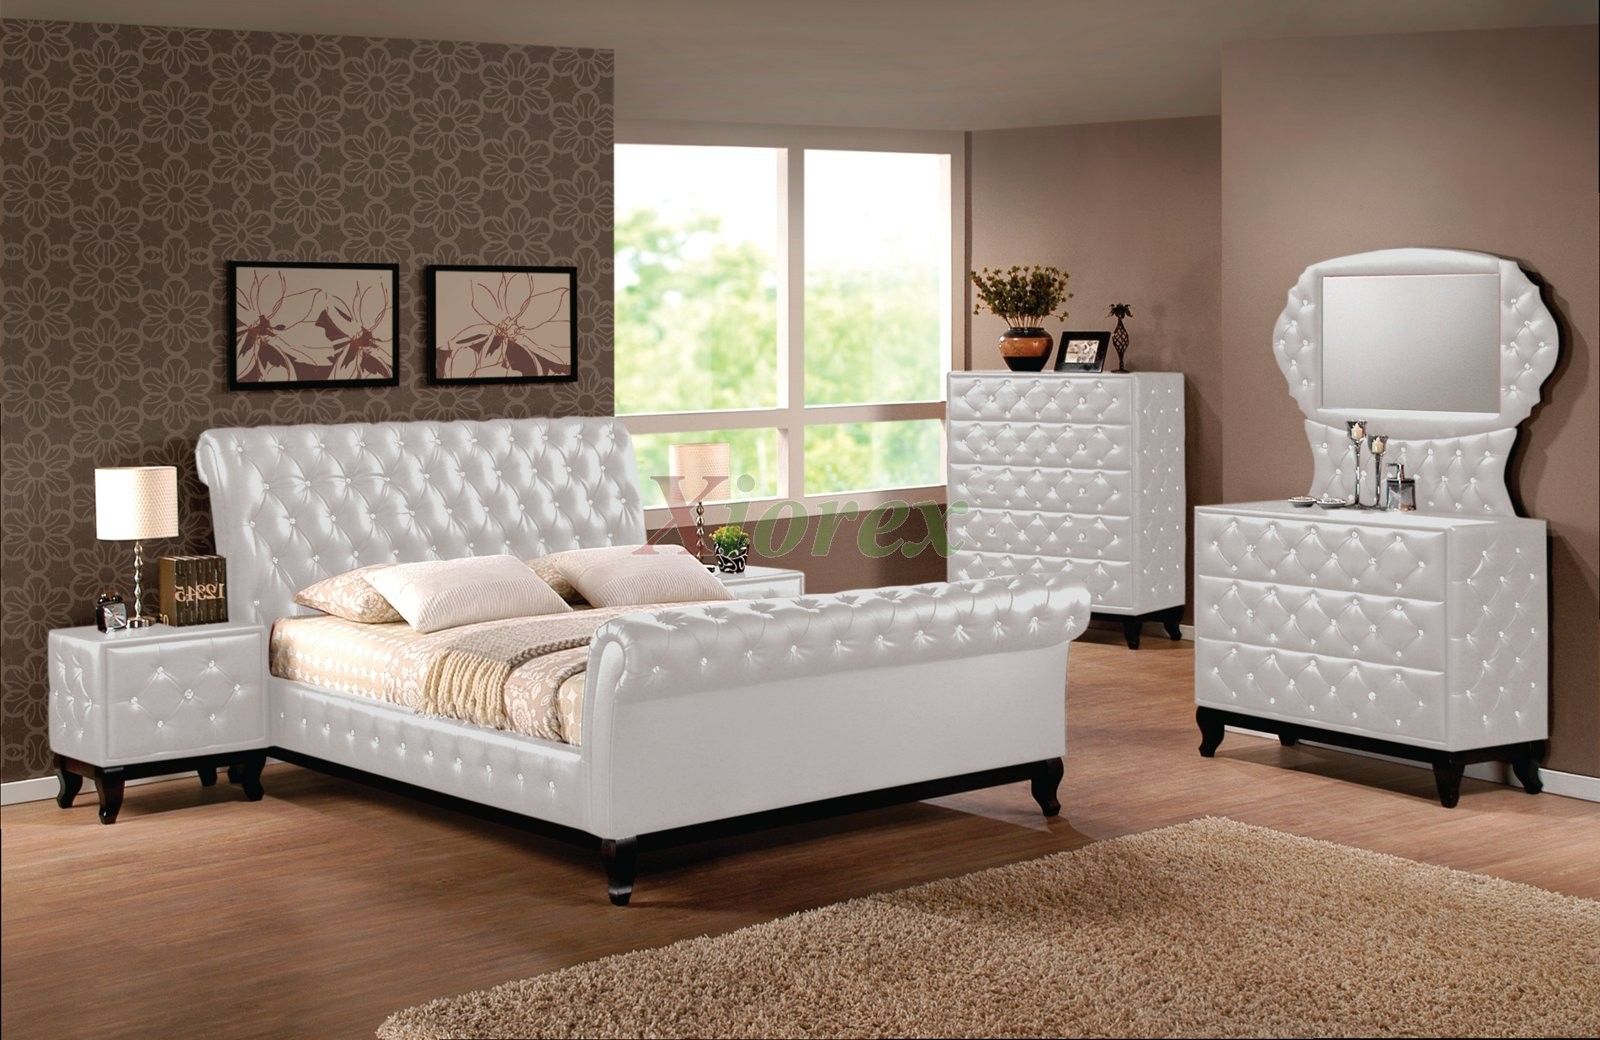 Upholstered sleigh platform bedroom furniture set 151 xiorex for Bedroom set with bed